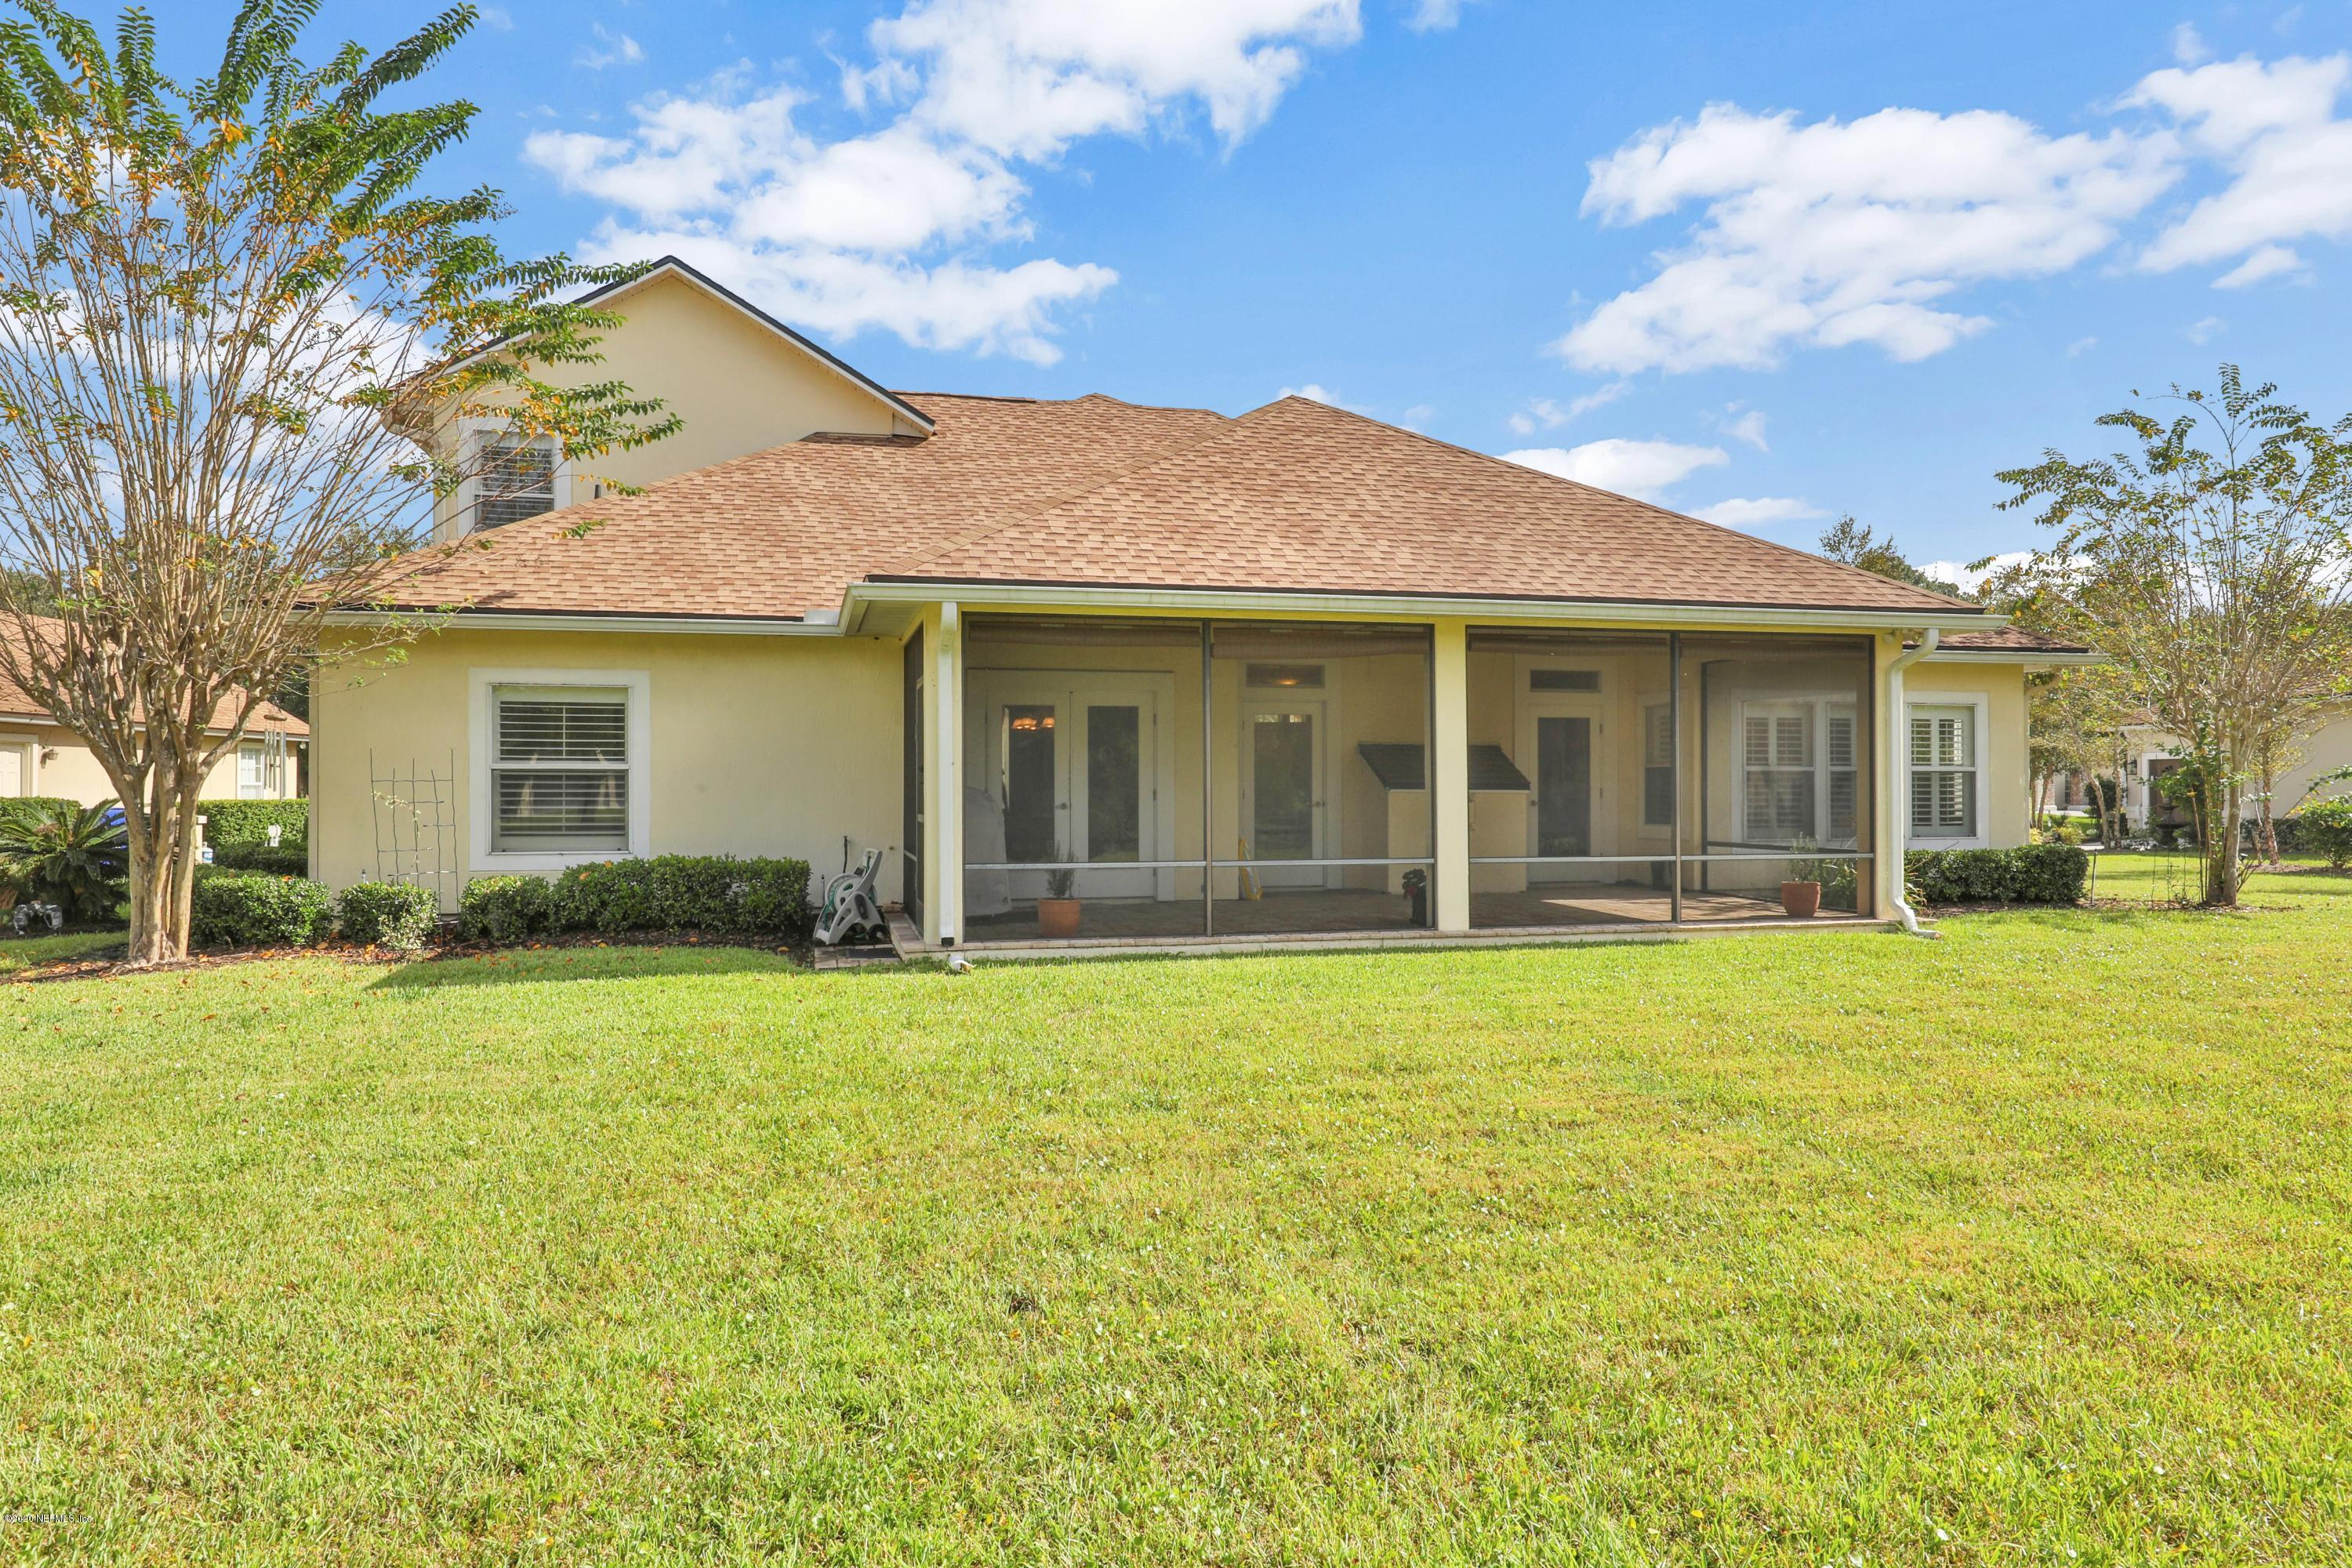 4217 FRANKLINIA, ST AUGUSTINE, FLORIDA 32092, 4 Bedrooms Bedrooms, ,3 BathroomsBathrooms,Residential,For sale,FRANKLINIA,1081780